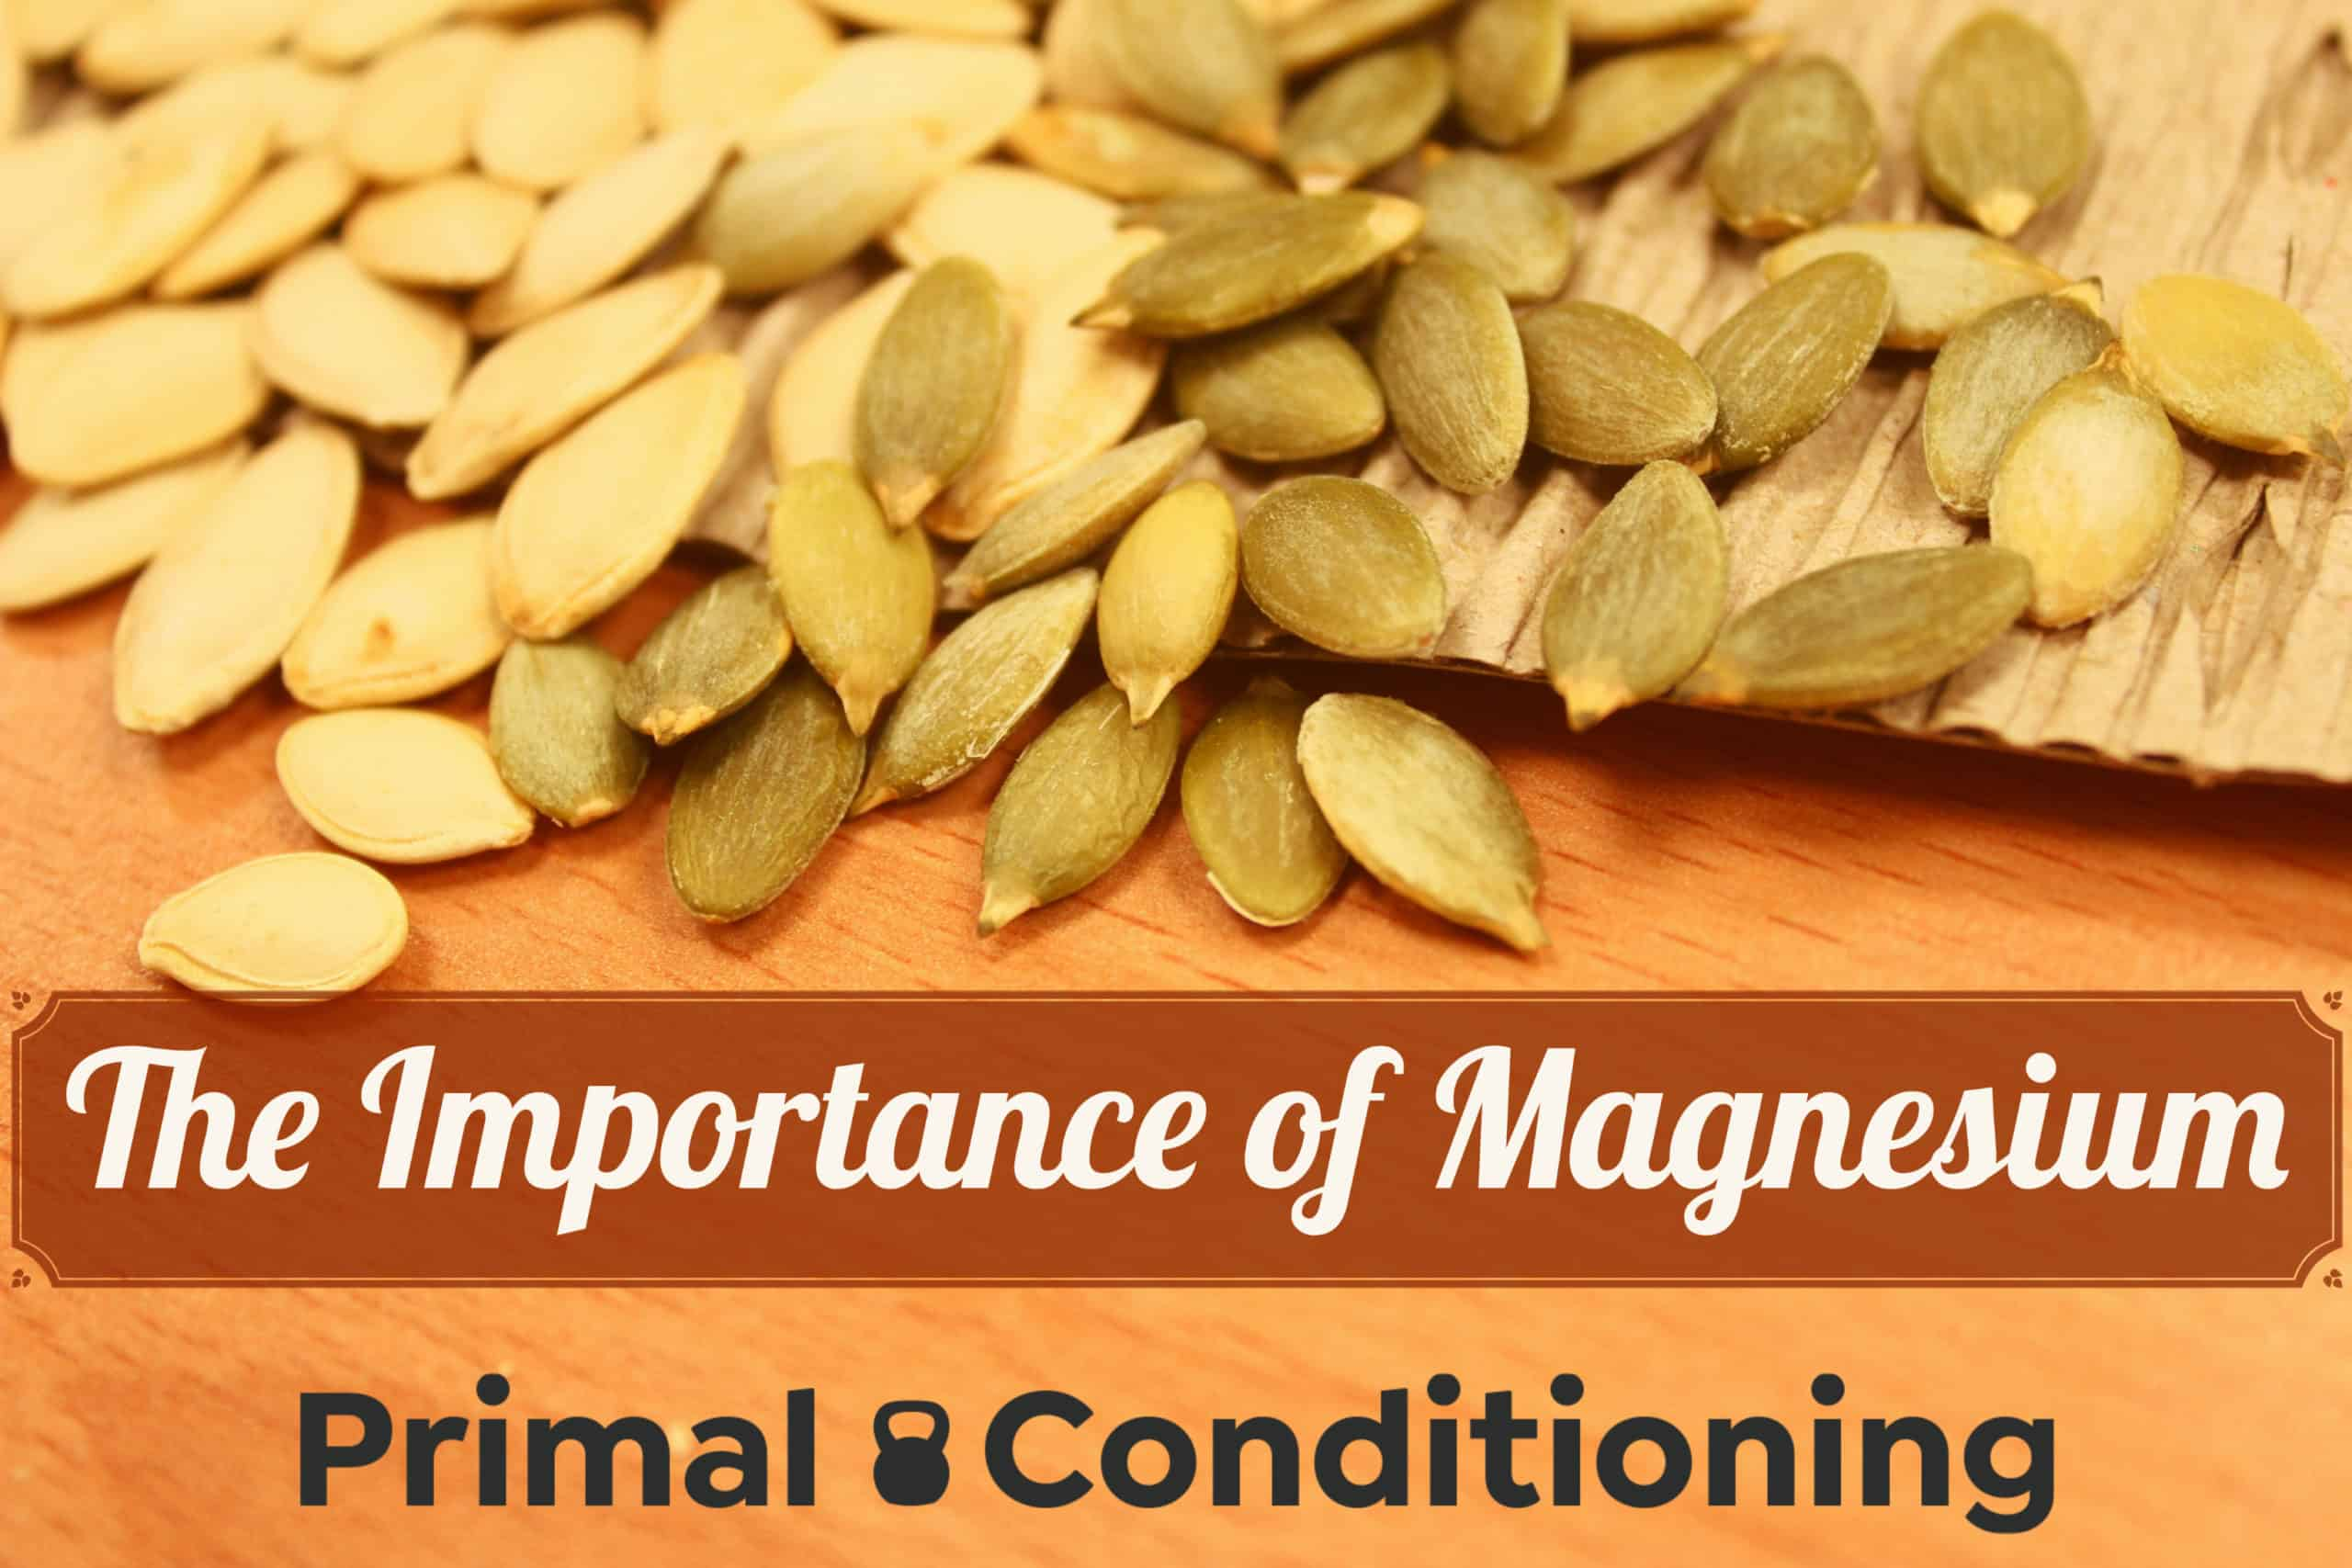 The Importance of Magnesium